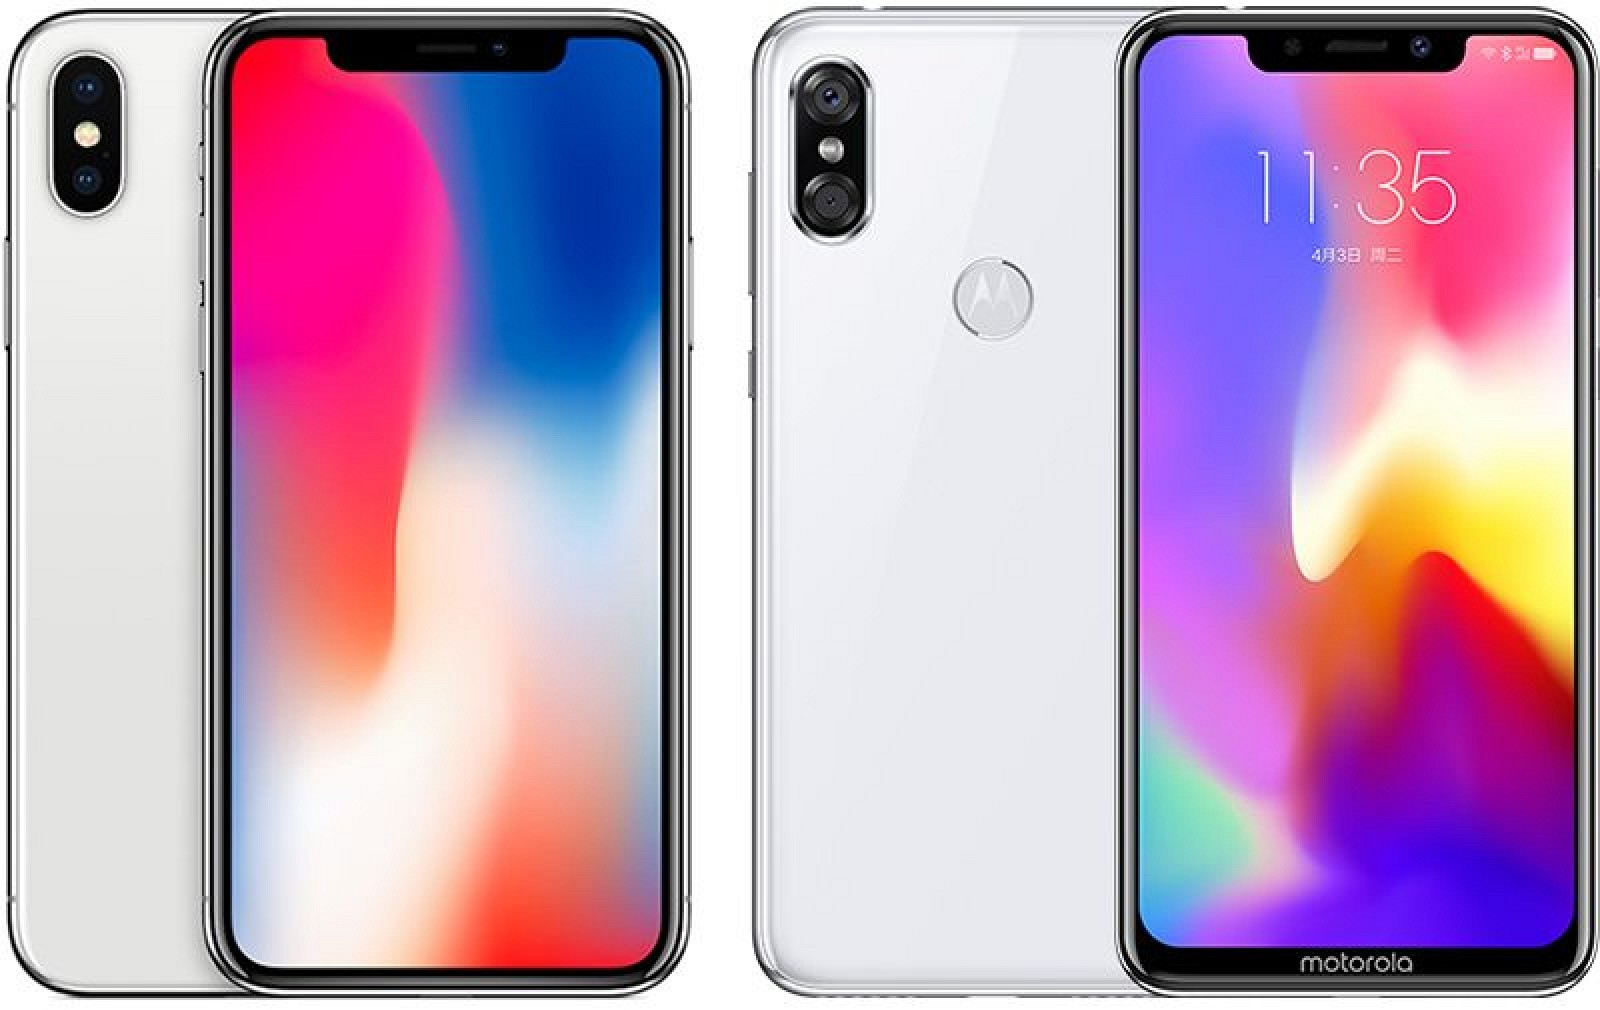 Motorola's New P30 Smartphone Blatantly Copies iPhone X